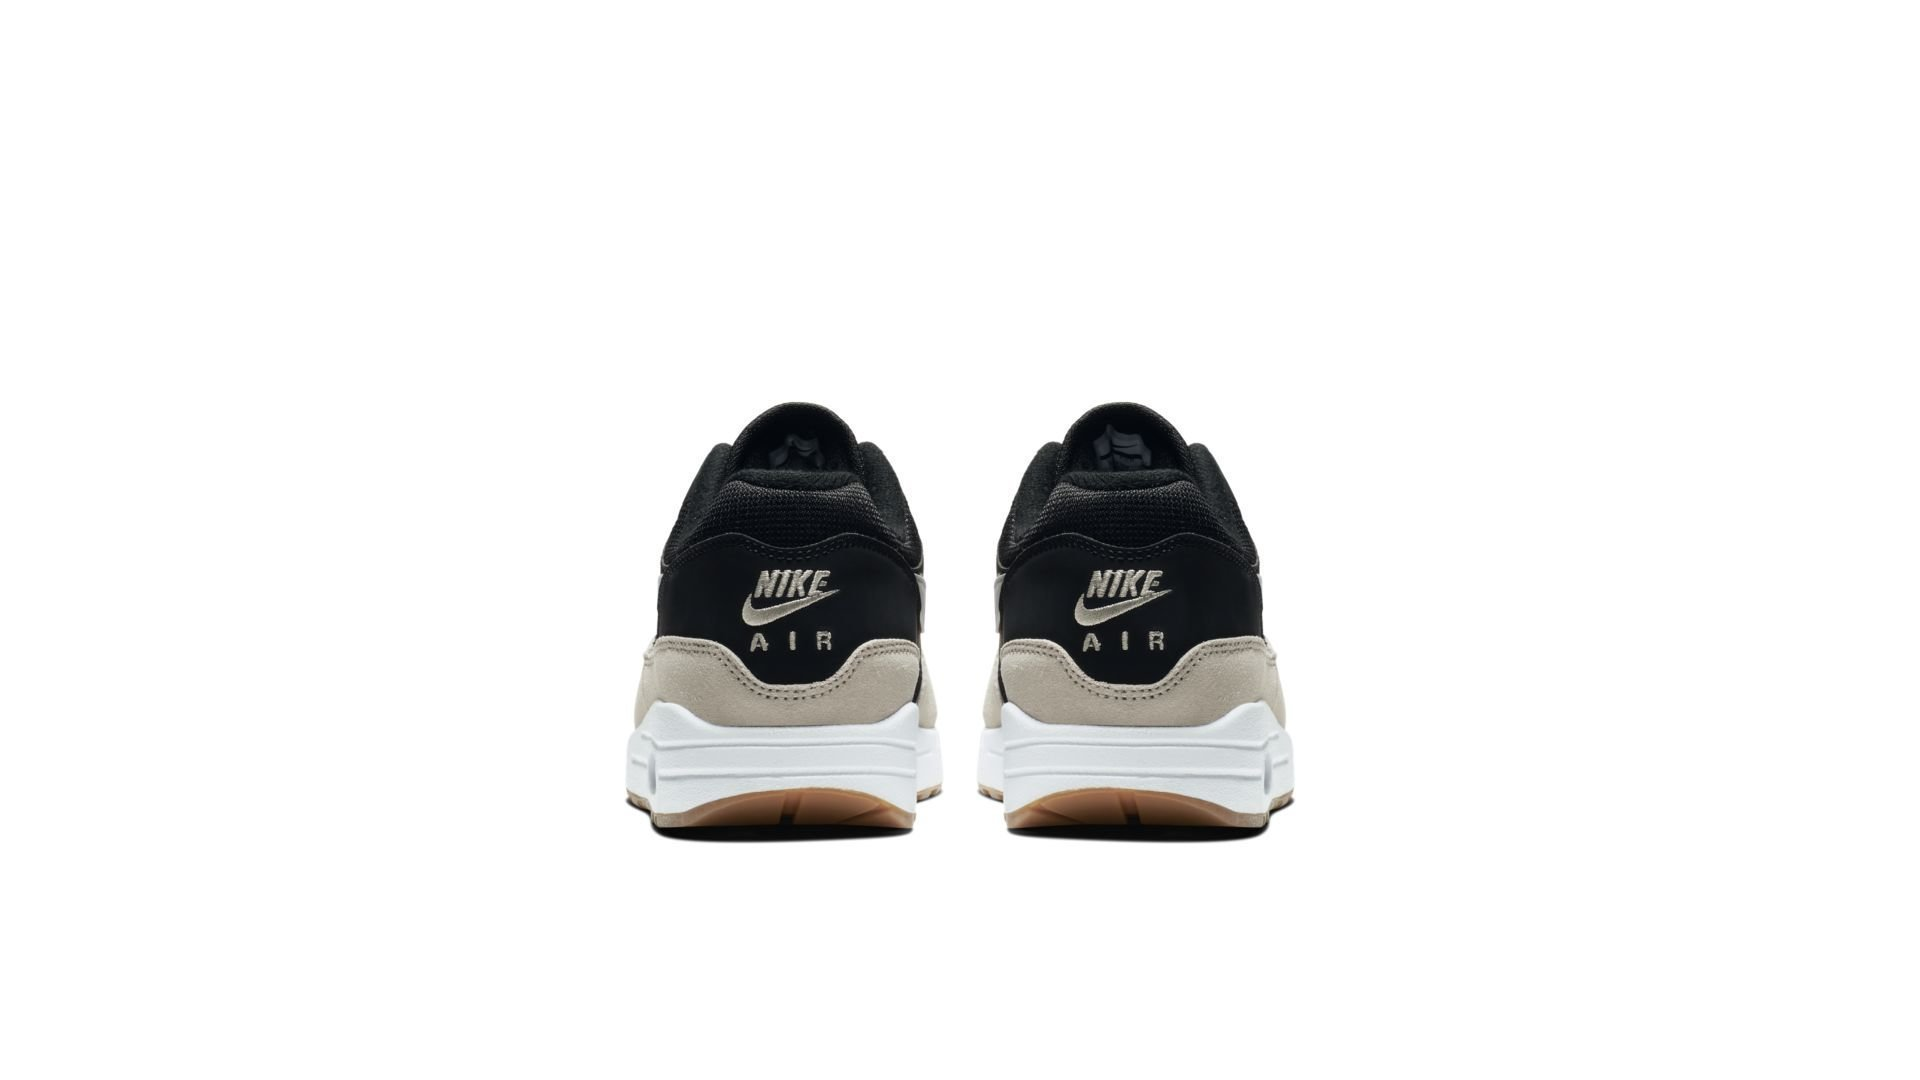 Nike Air Max 1 'Black & White' (AH8145-009)